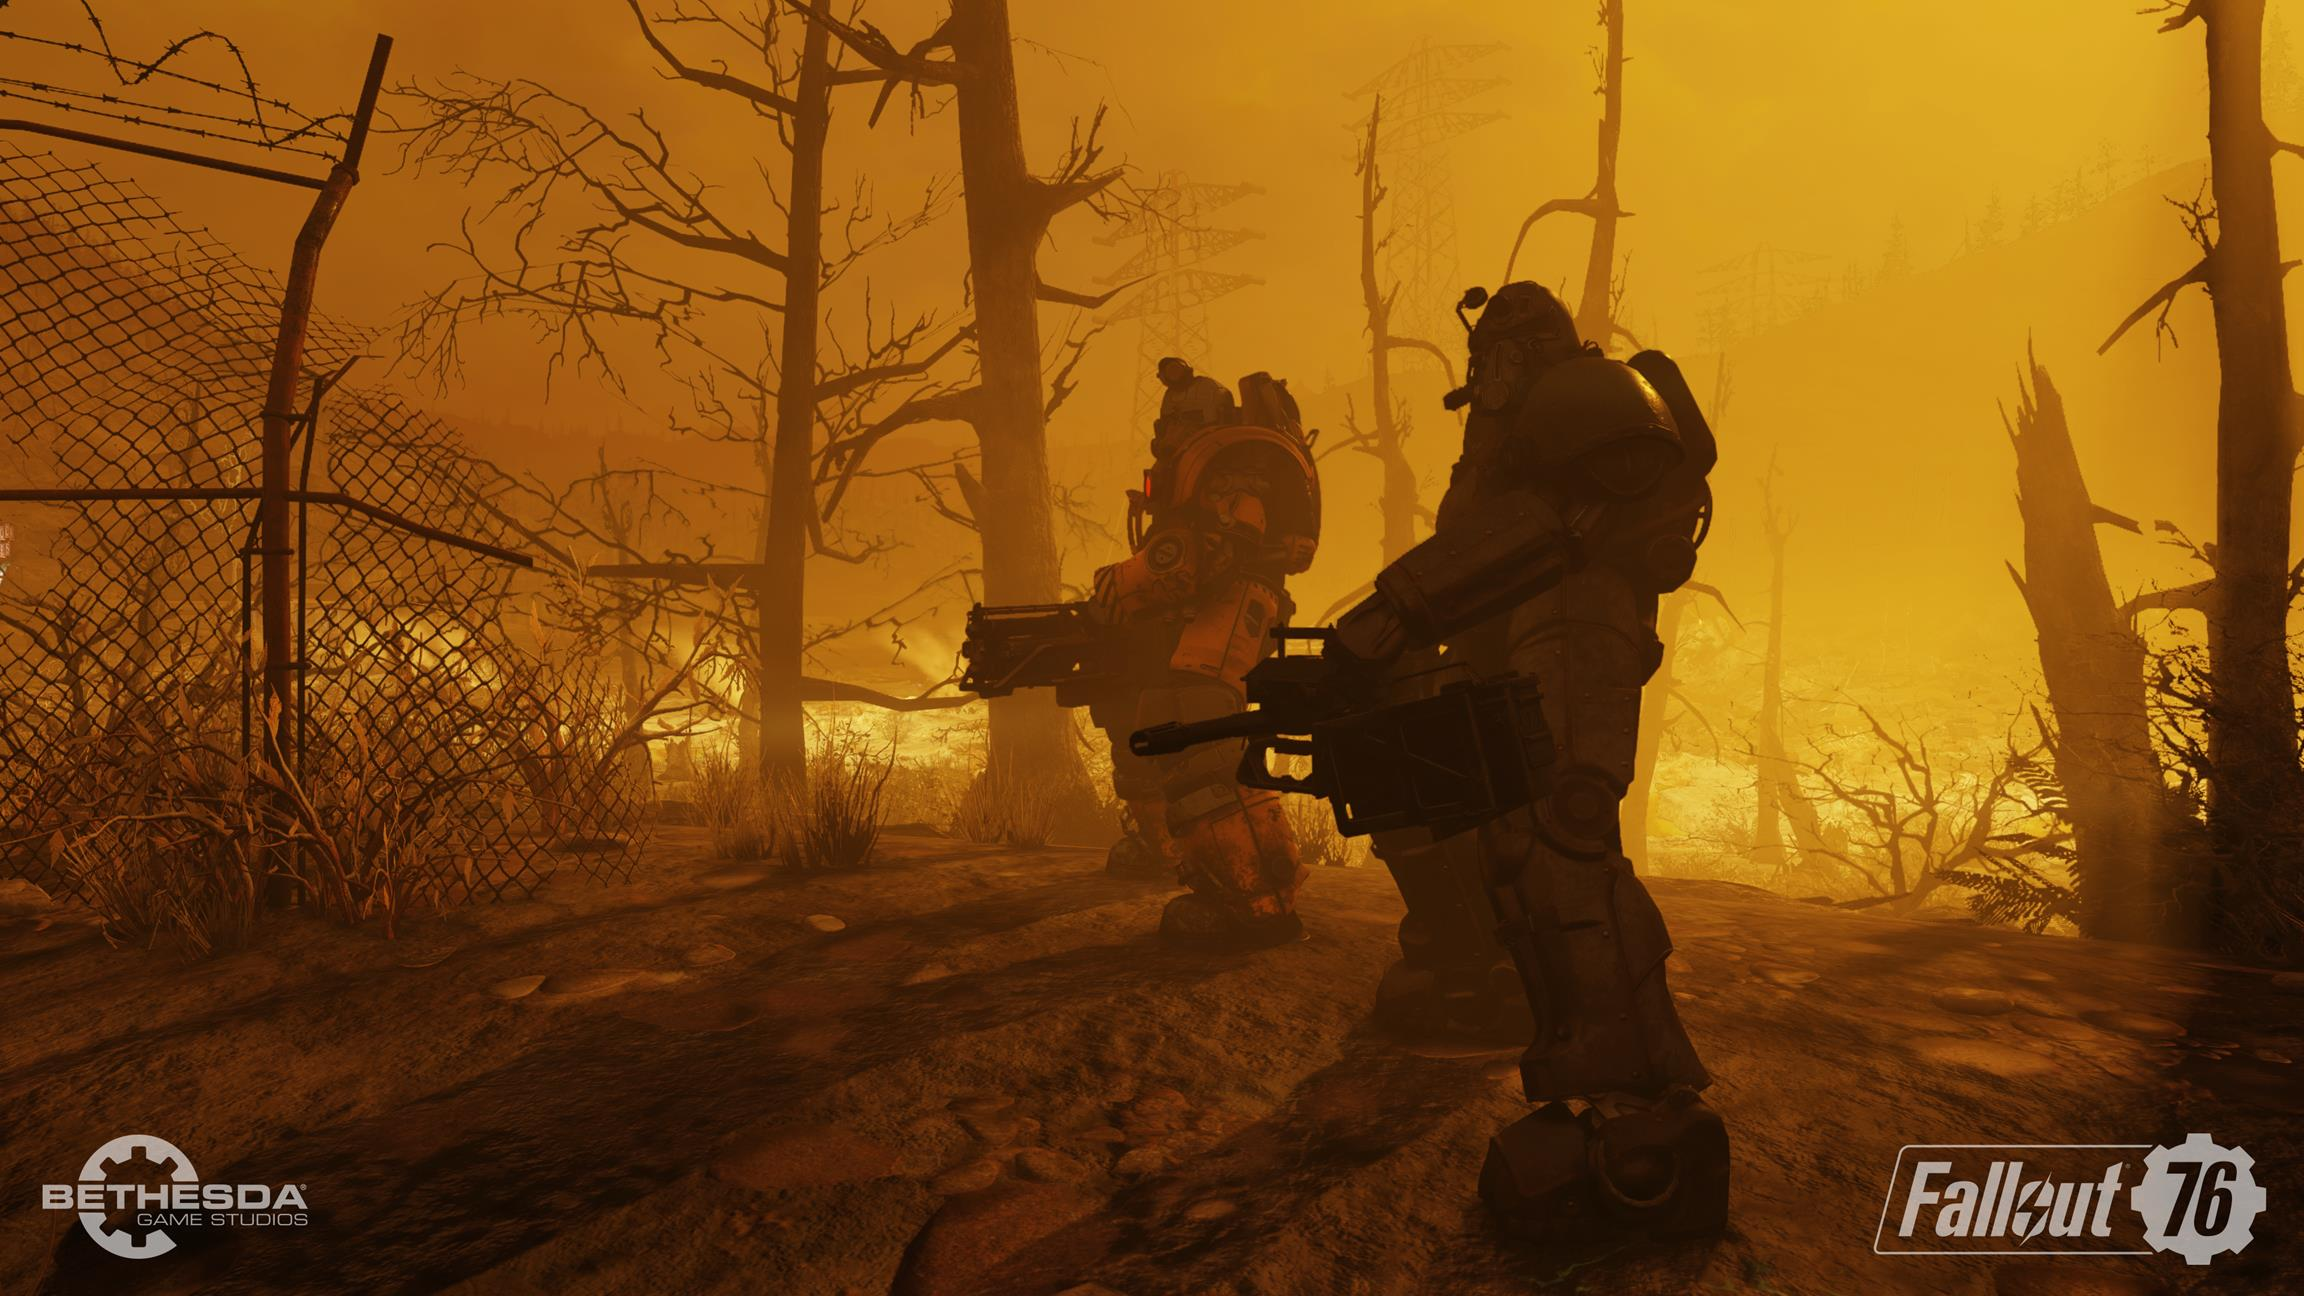 Fallout 76 Tips 21 Things I Wish I Knew Before Playing Vg247